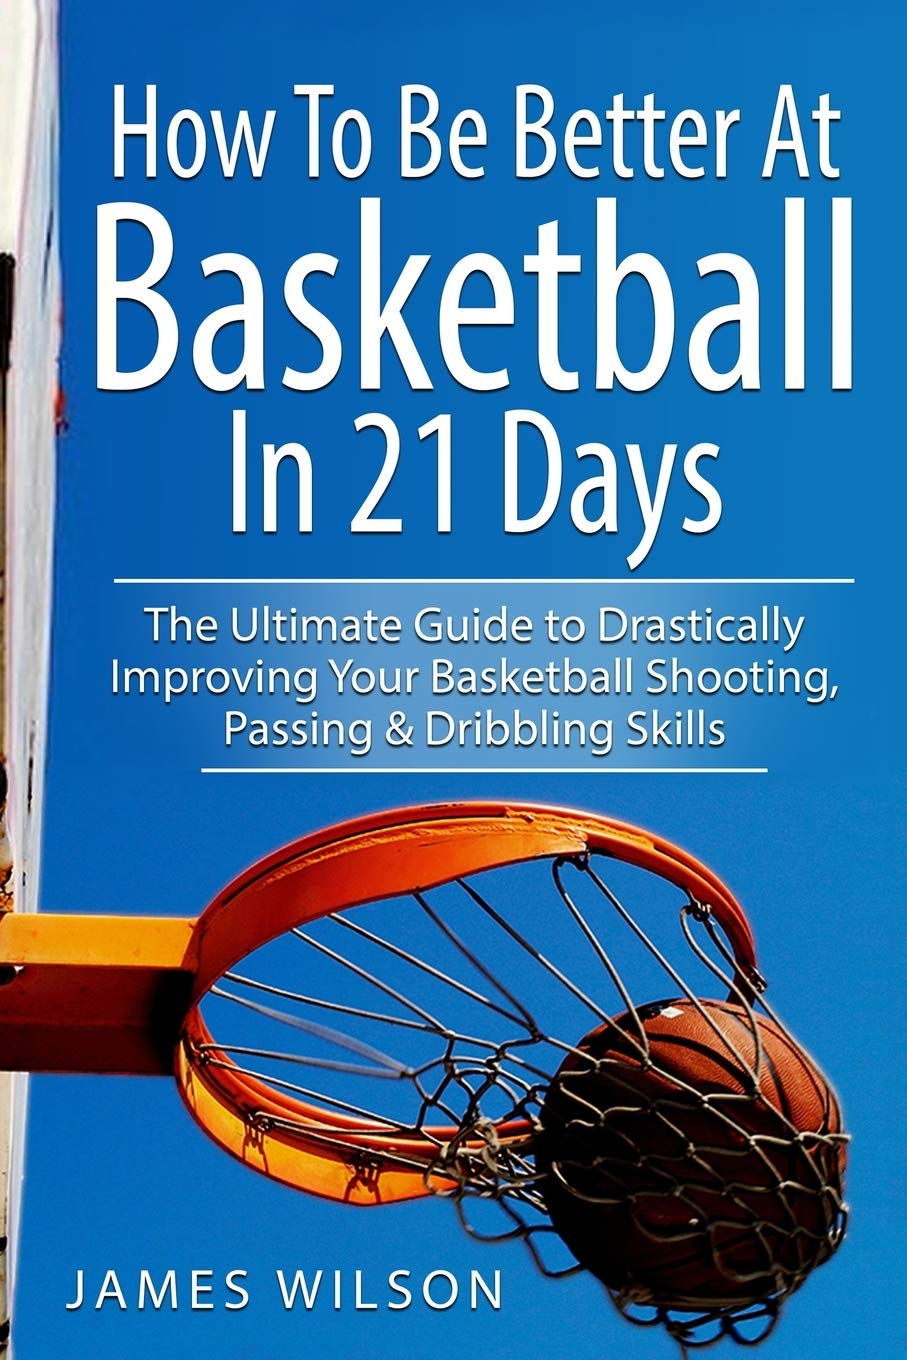 how-to-be-better-at-basketball-in-21-days